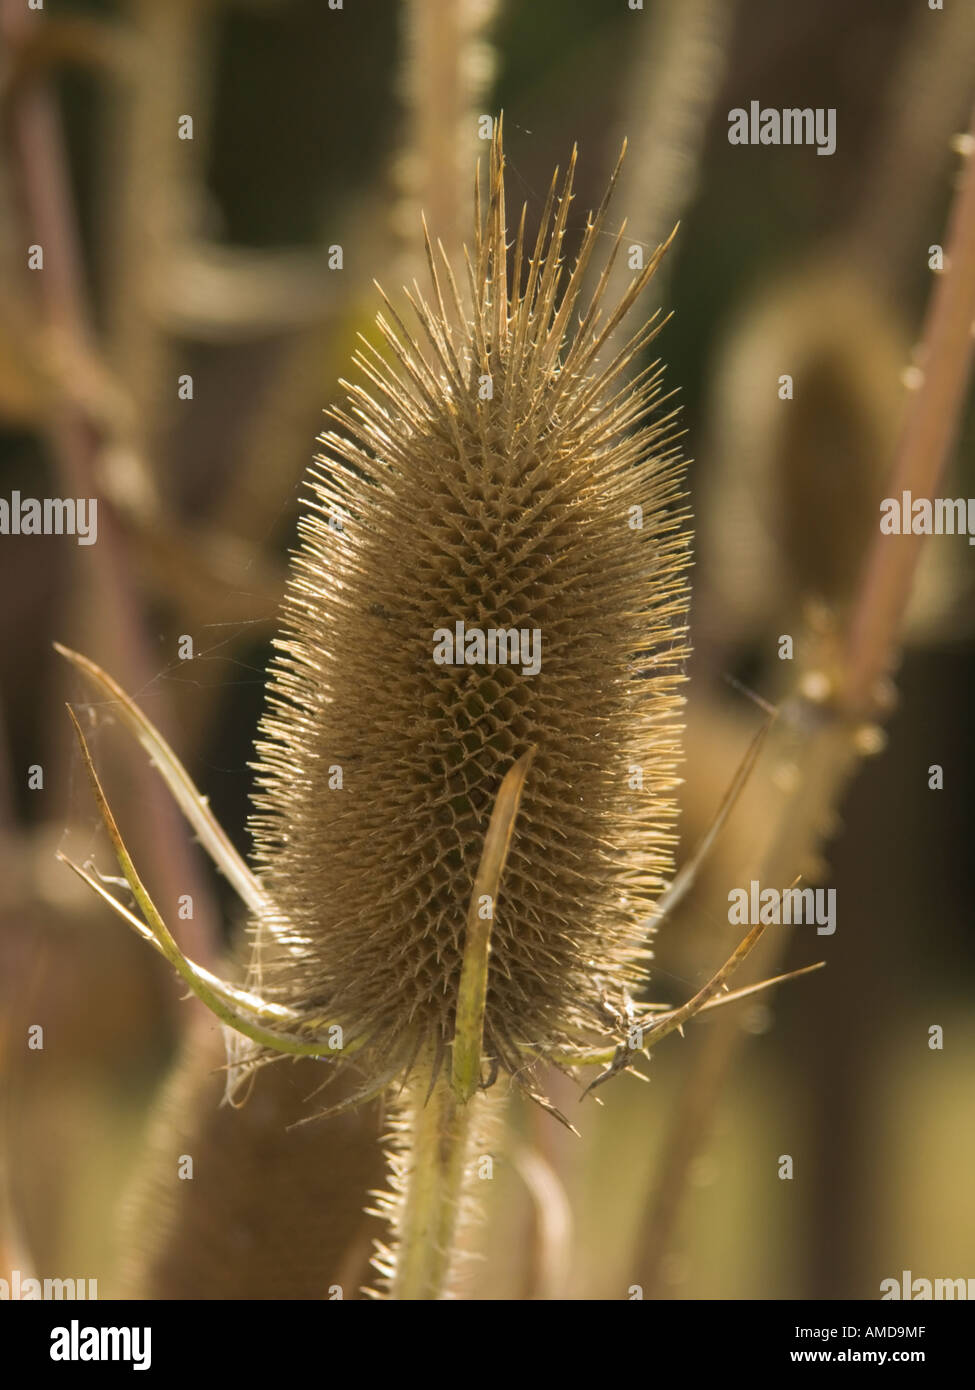 The spikey flower head of the common teasel. The seed head of teasel is used to raise the nap on woollen cloth - Stock Image